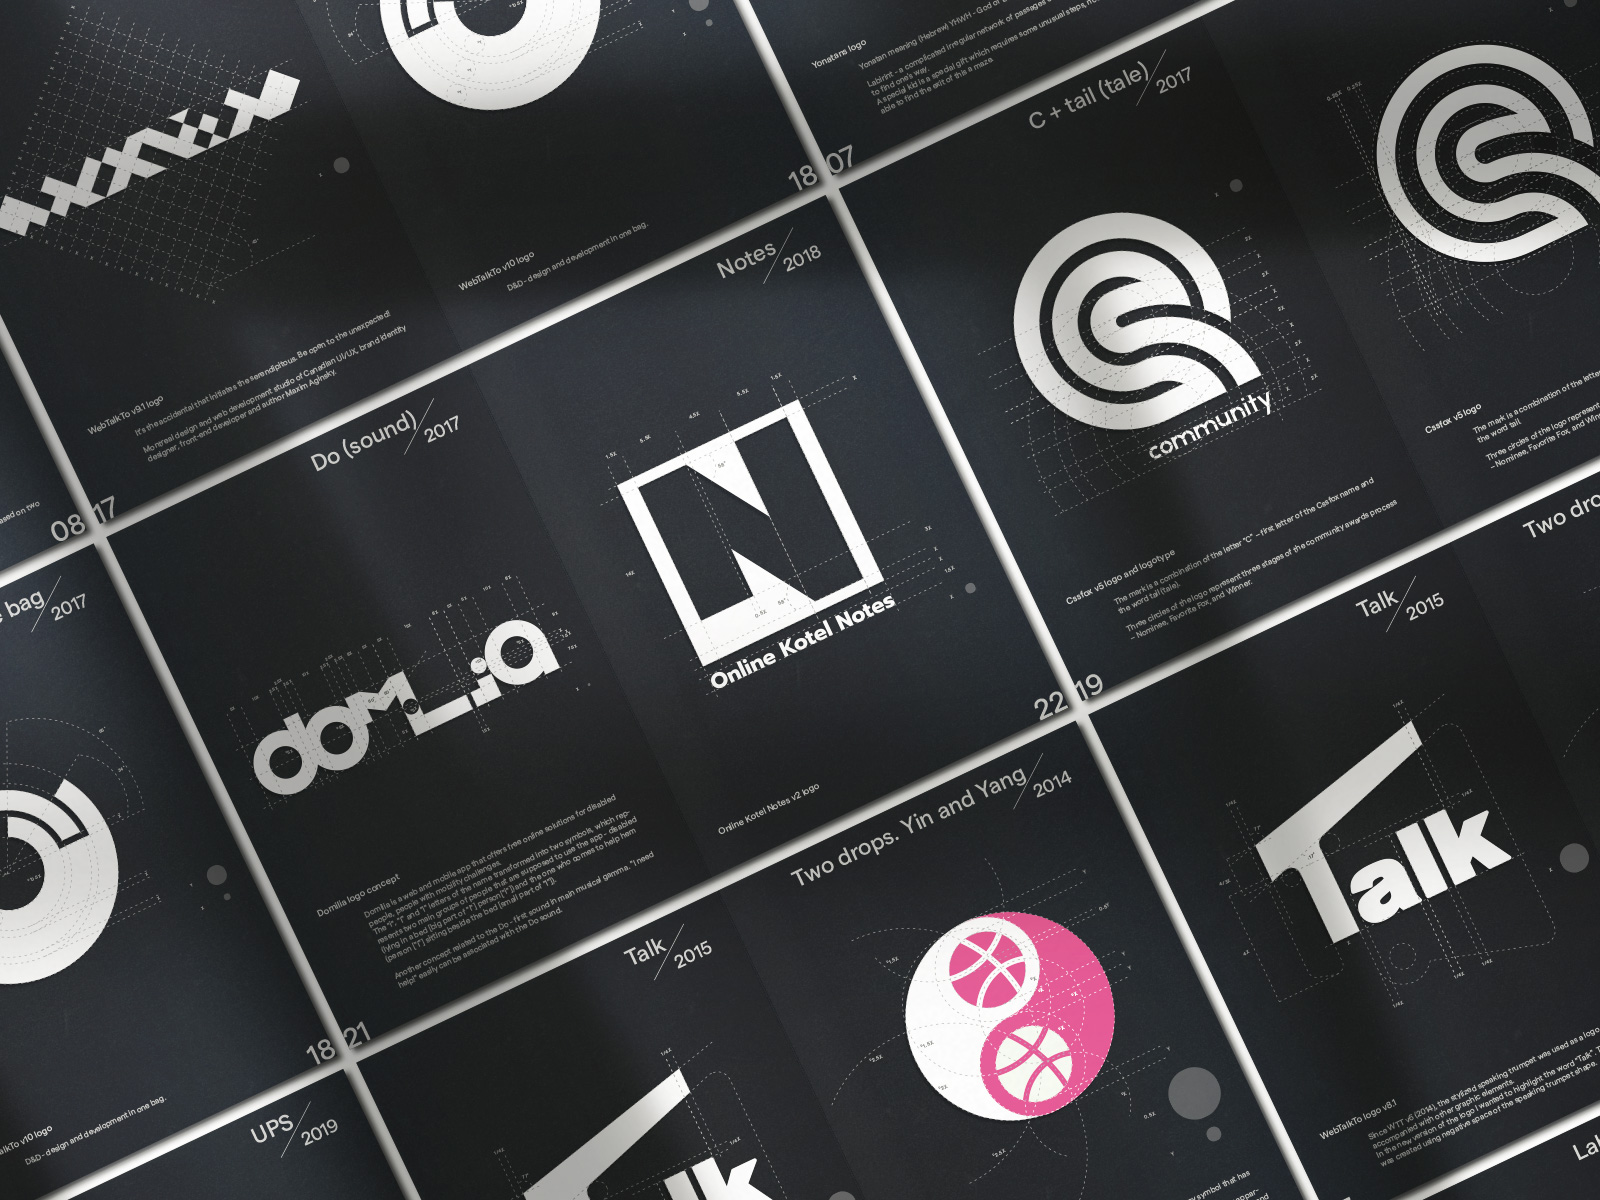 Original monograms, logos, logotypes, brandmarks, equipped with grid system